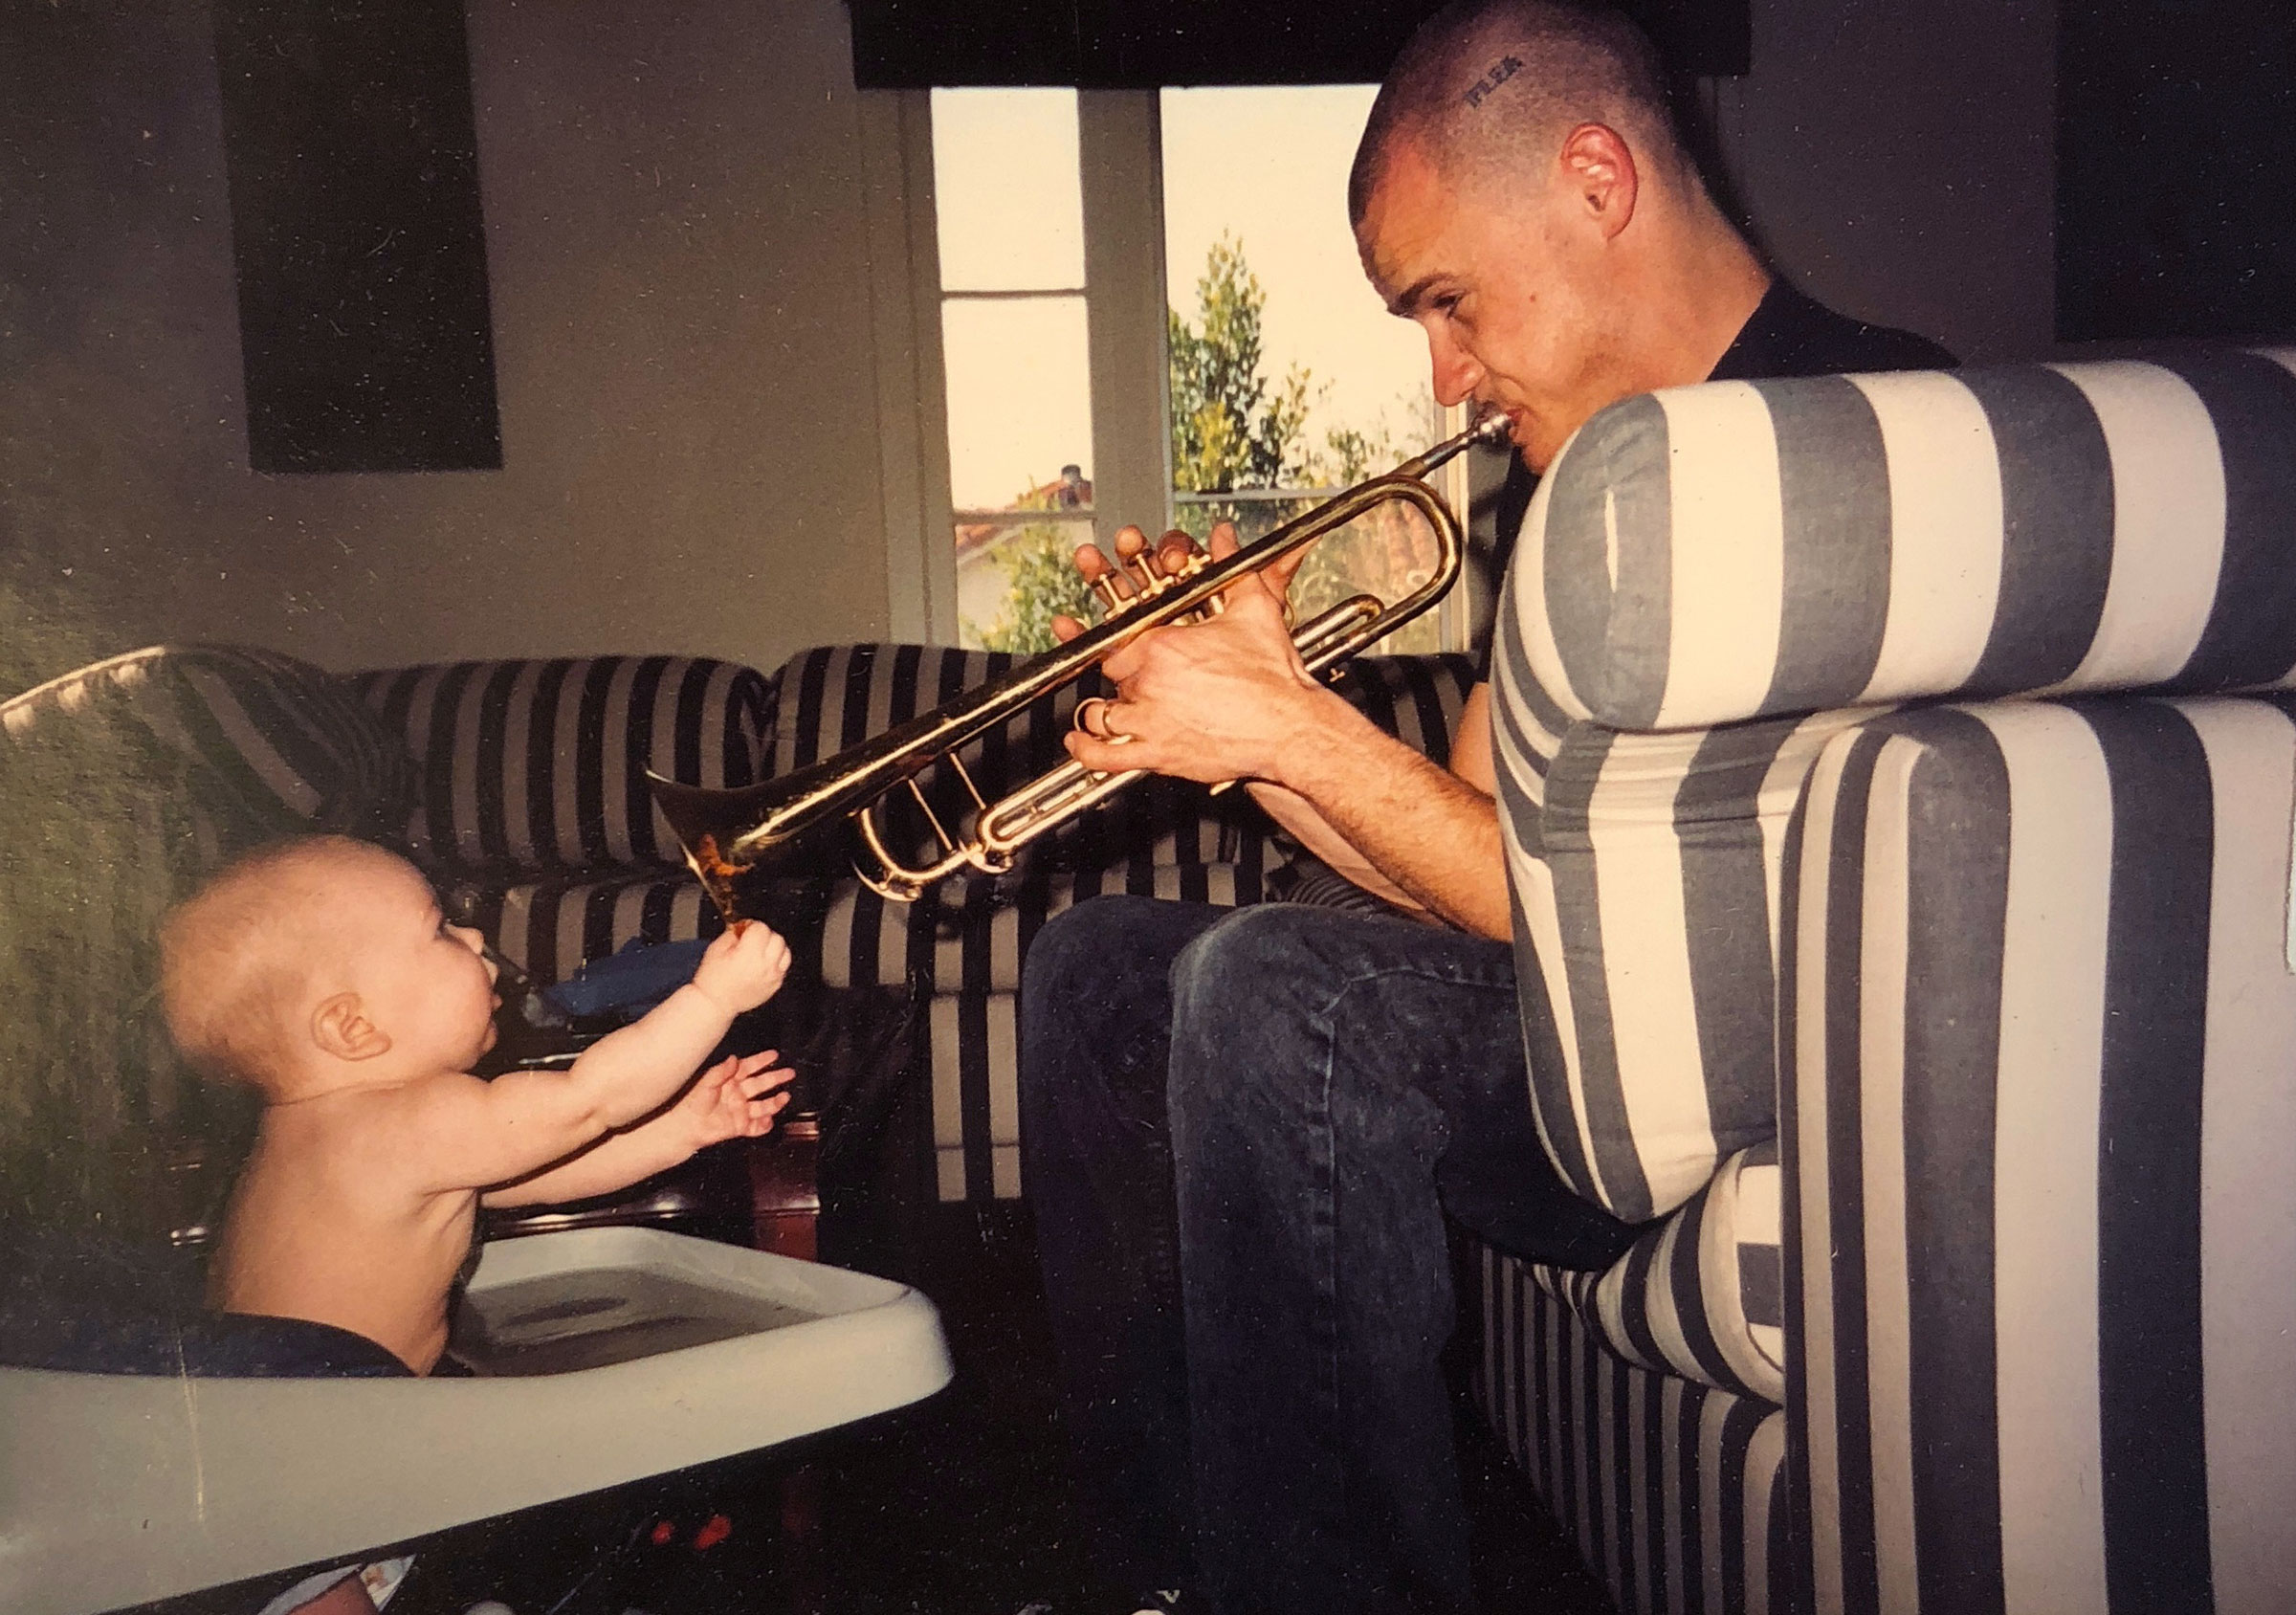 Flea at age 26 with his one year old daughter, Clara Balzary.